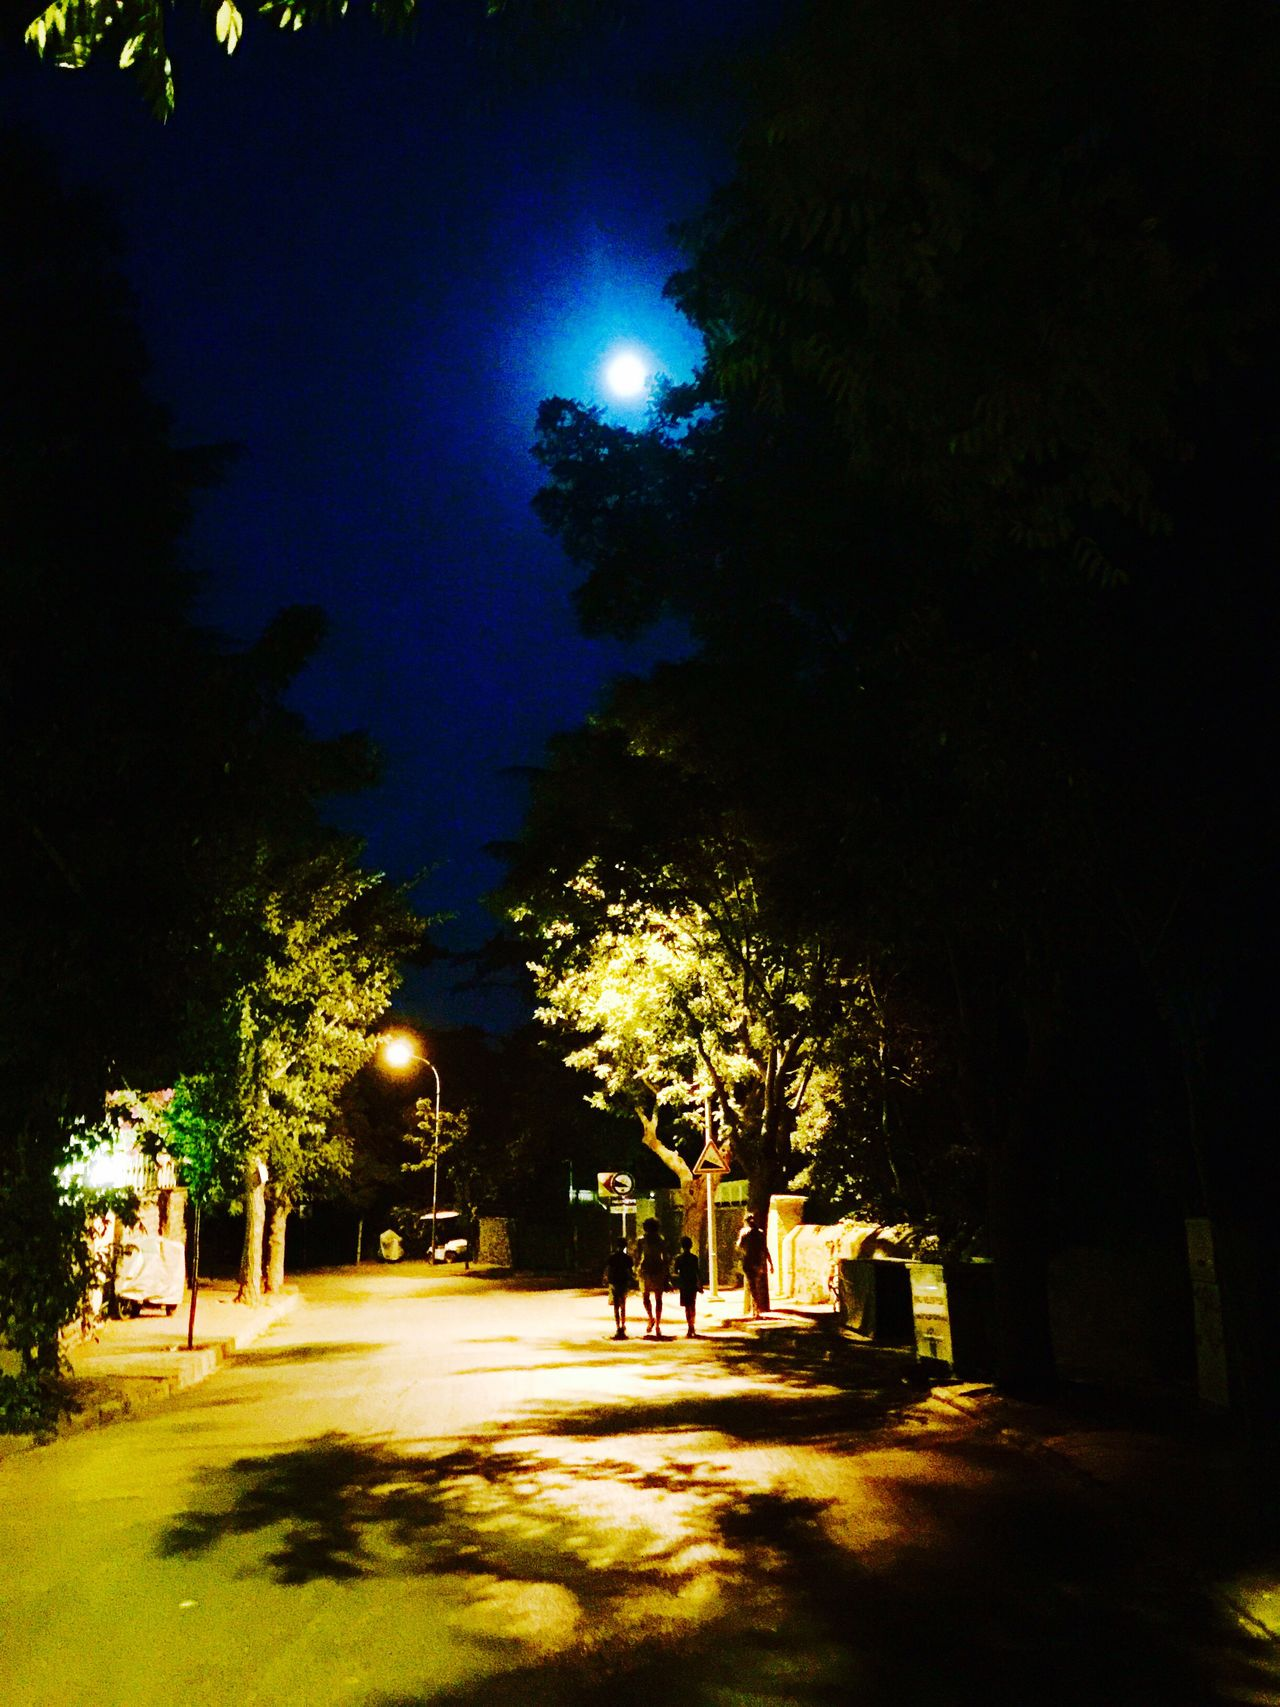 Full Moon Büyükada Prinkipo Nightphotography Night Lights Night View Princeislands Trees Mobile Photography IPhoneography Mobilephotography